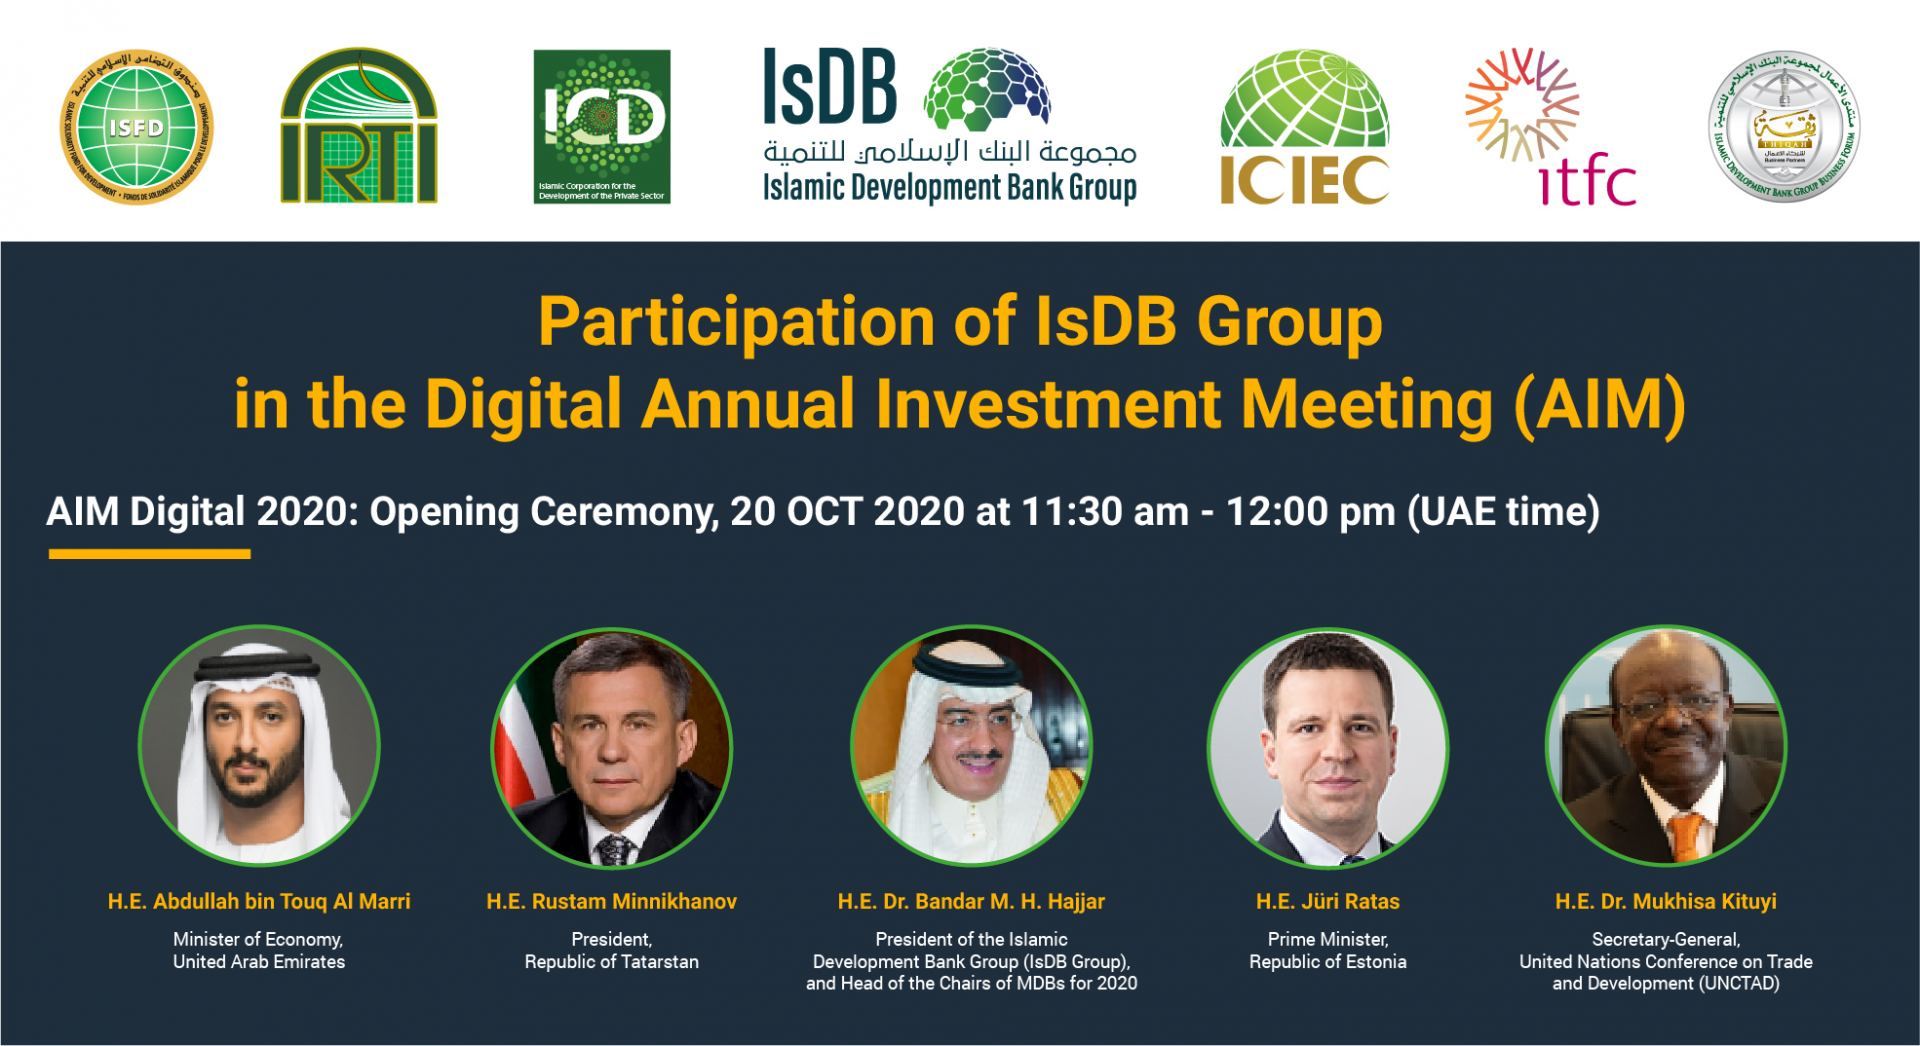 IsDB Group and UAE Ministry of Economy co-organise first digital edition of Annual Investment Meeting on 20-22 October 2020